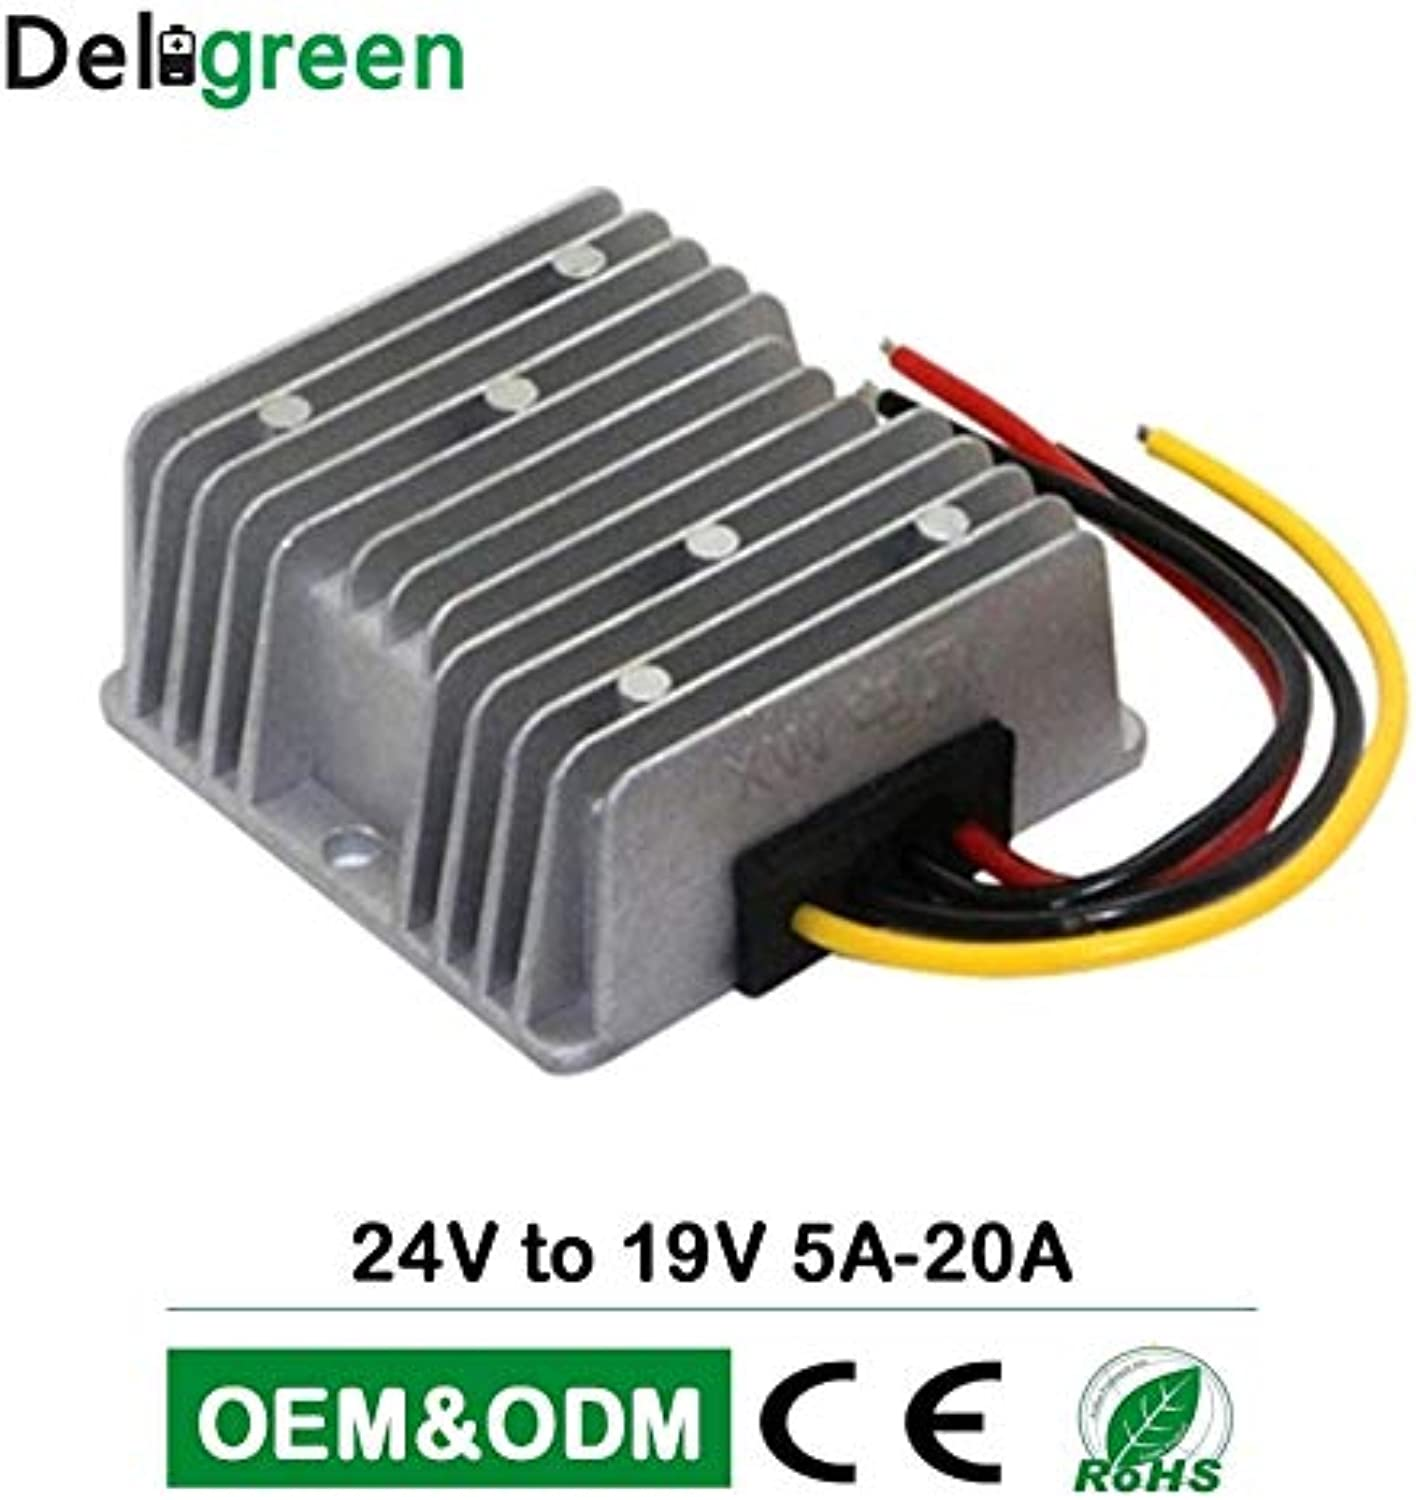 Laliva Plugs  93% Effeciency 24V to 19V 5A 10A 15A 20A Hight Voltage DC Step Down Congreener in Intergrated Circuits  (Standard  19V5A)